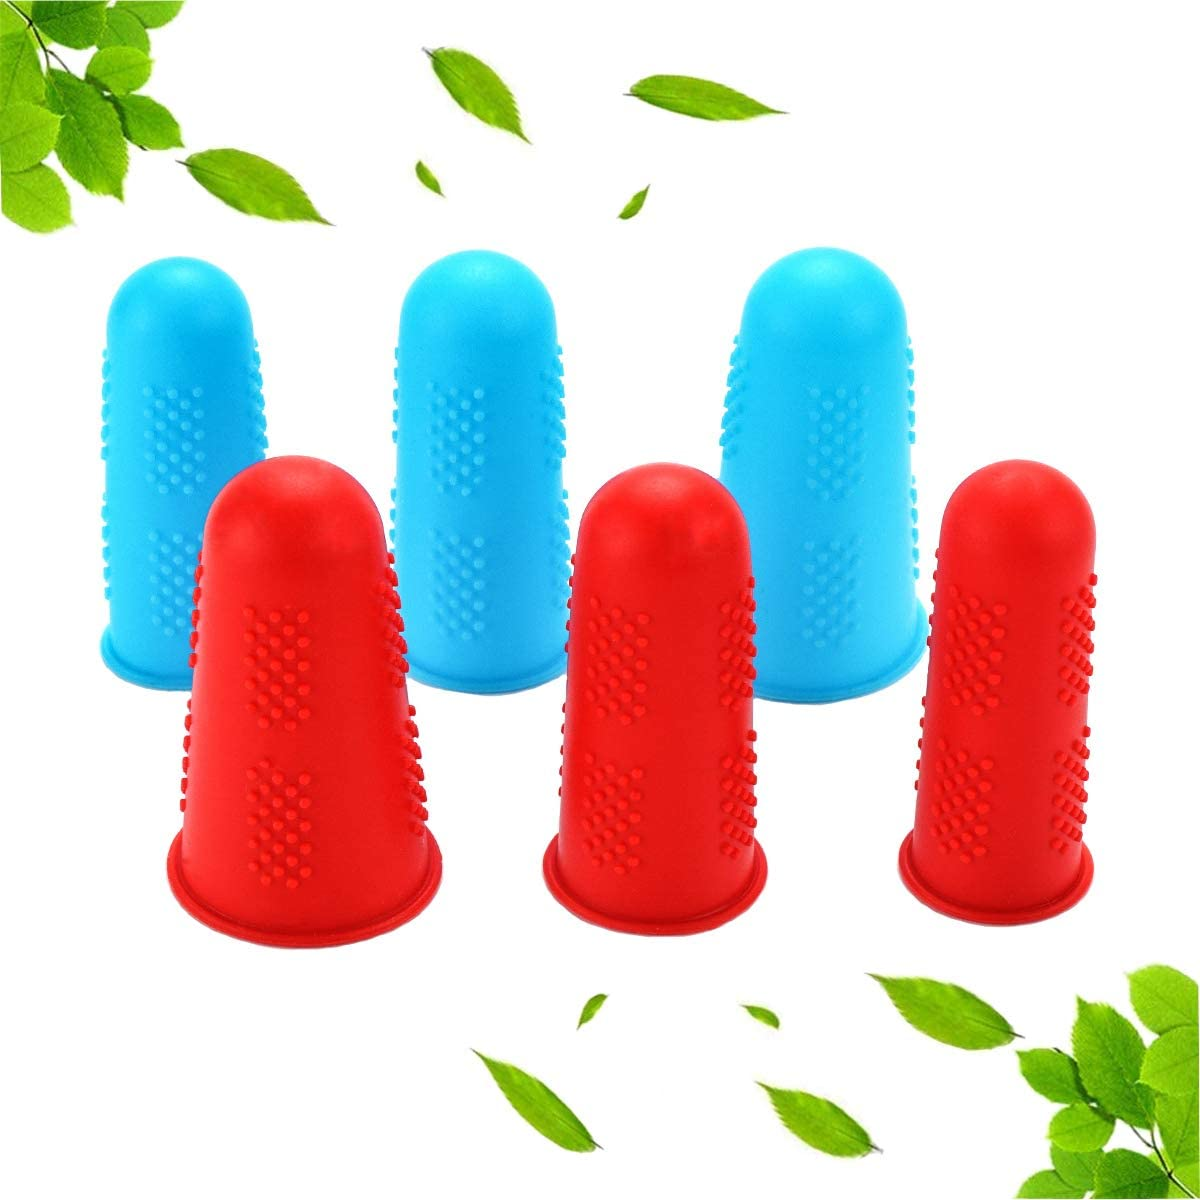 YuanHongLife 6 PCS Silicone Finger Protectors for Hot Glue Gun, Finger Glove, Finger Guard for Sewing, Finger Cap for Knitting Cutting Wax Adhesives Embroidery Craft Ironing Etc, (bluered)